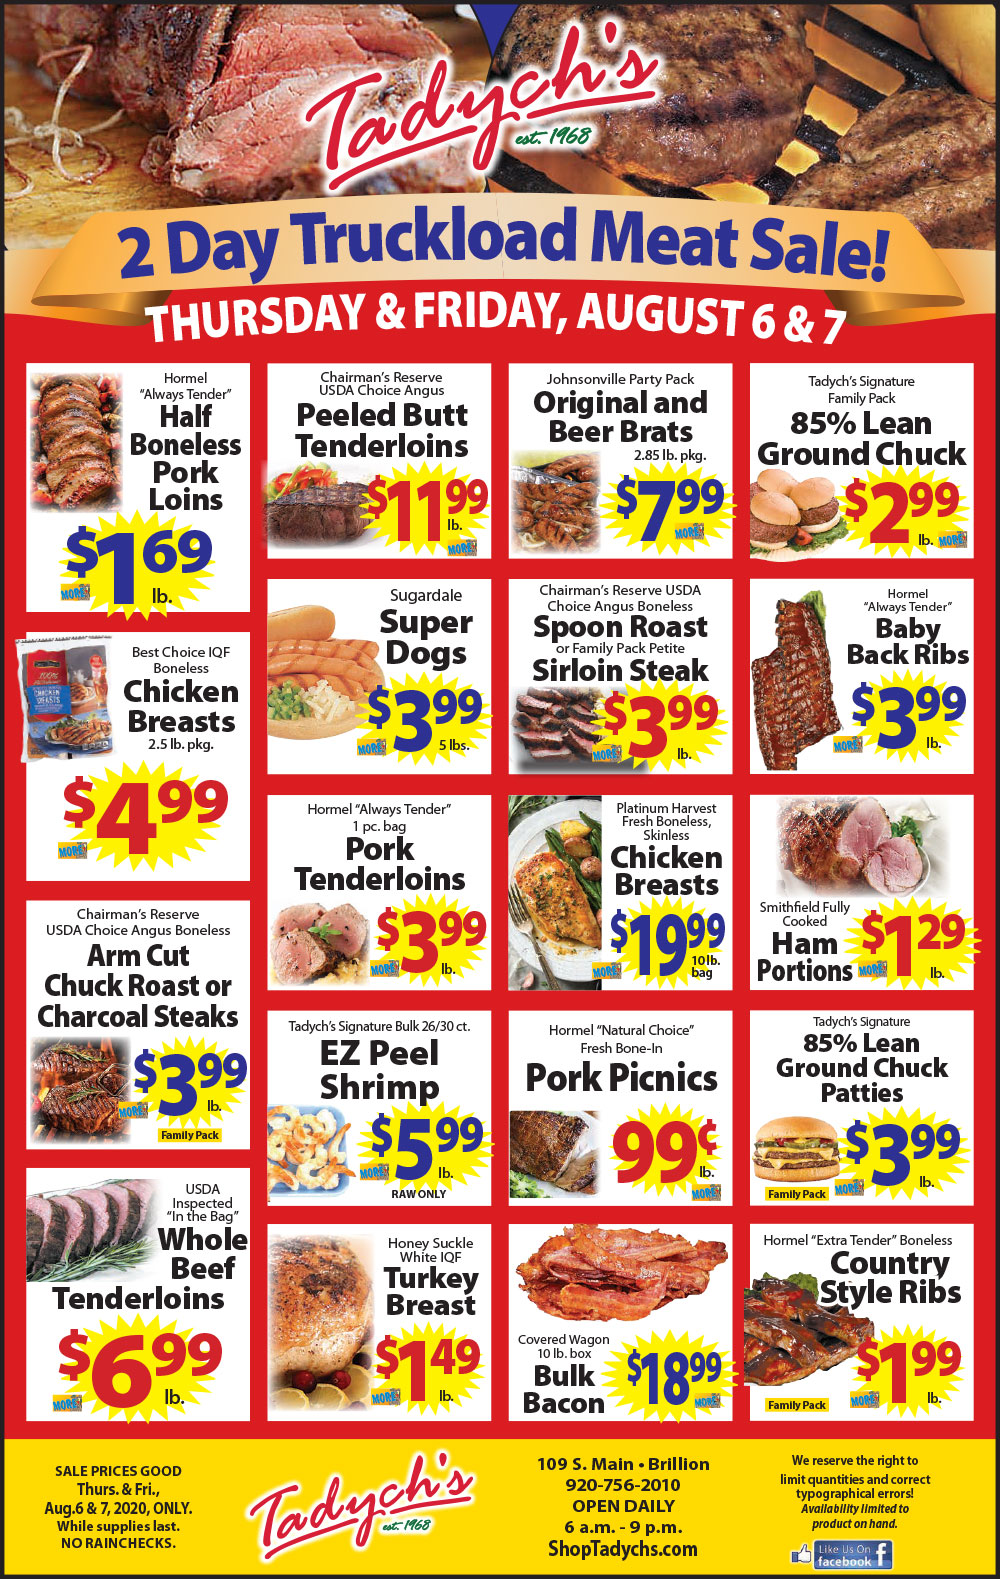 Tadych's Brillion Truckload Meat Sale Aug 6-7